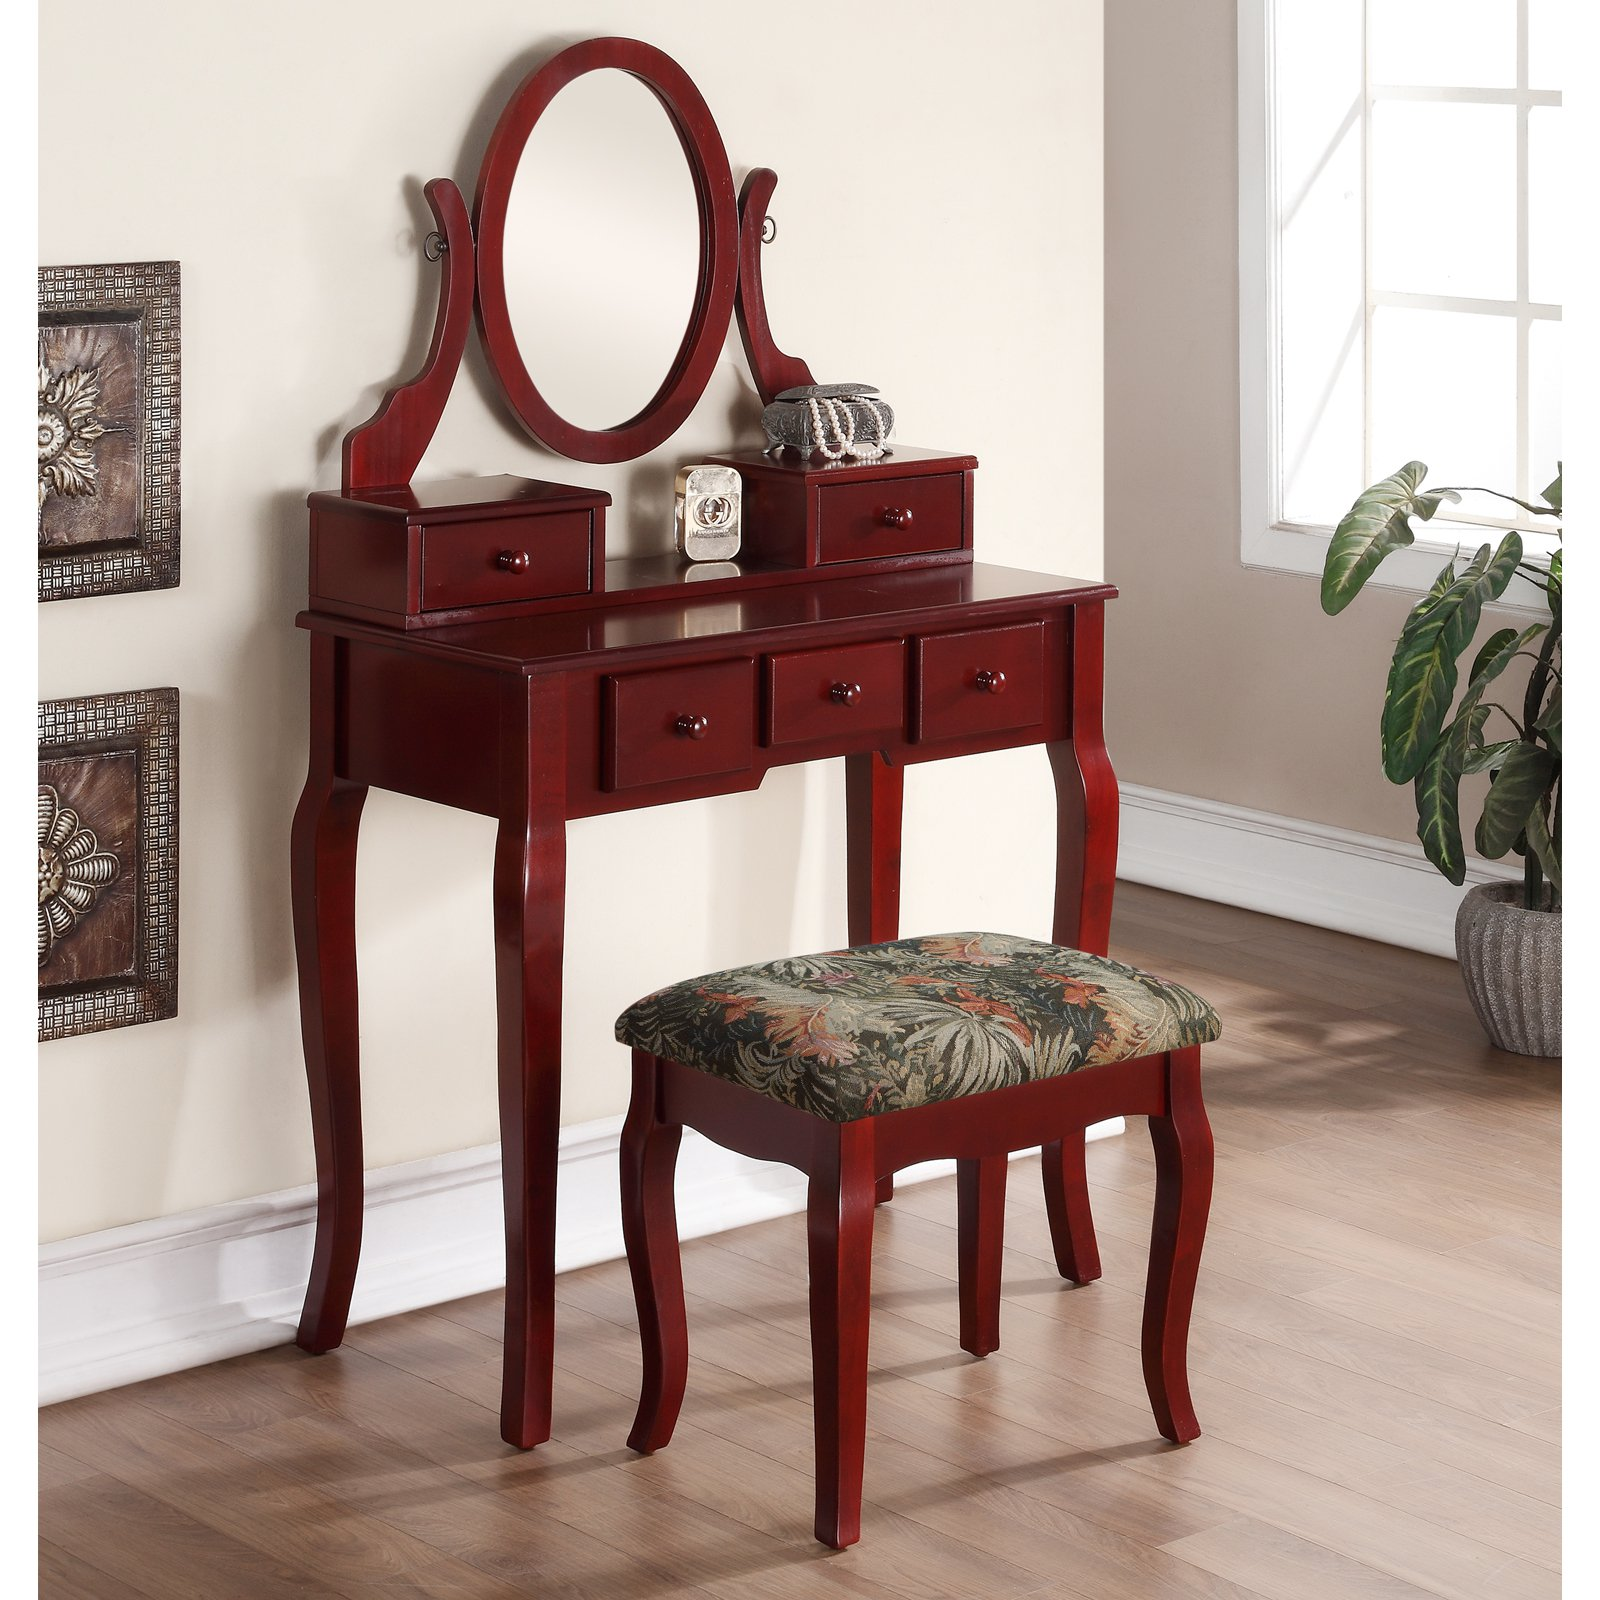 Vanity Table And Stool Set Roundhill Ashley Wood Make Up Vanity Table And Stool Set